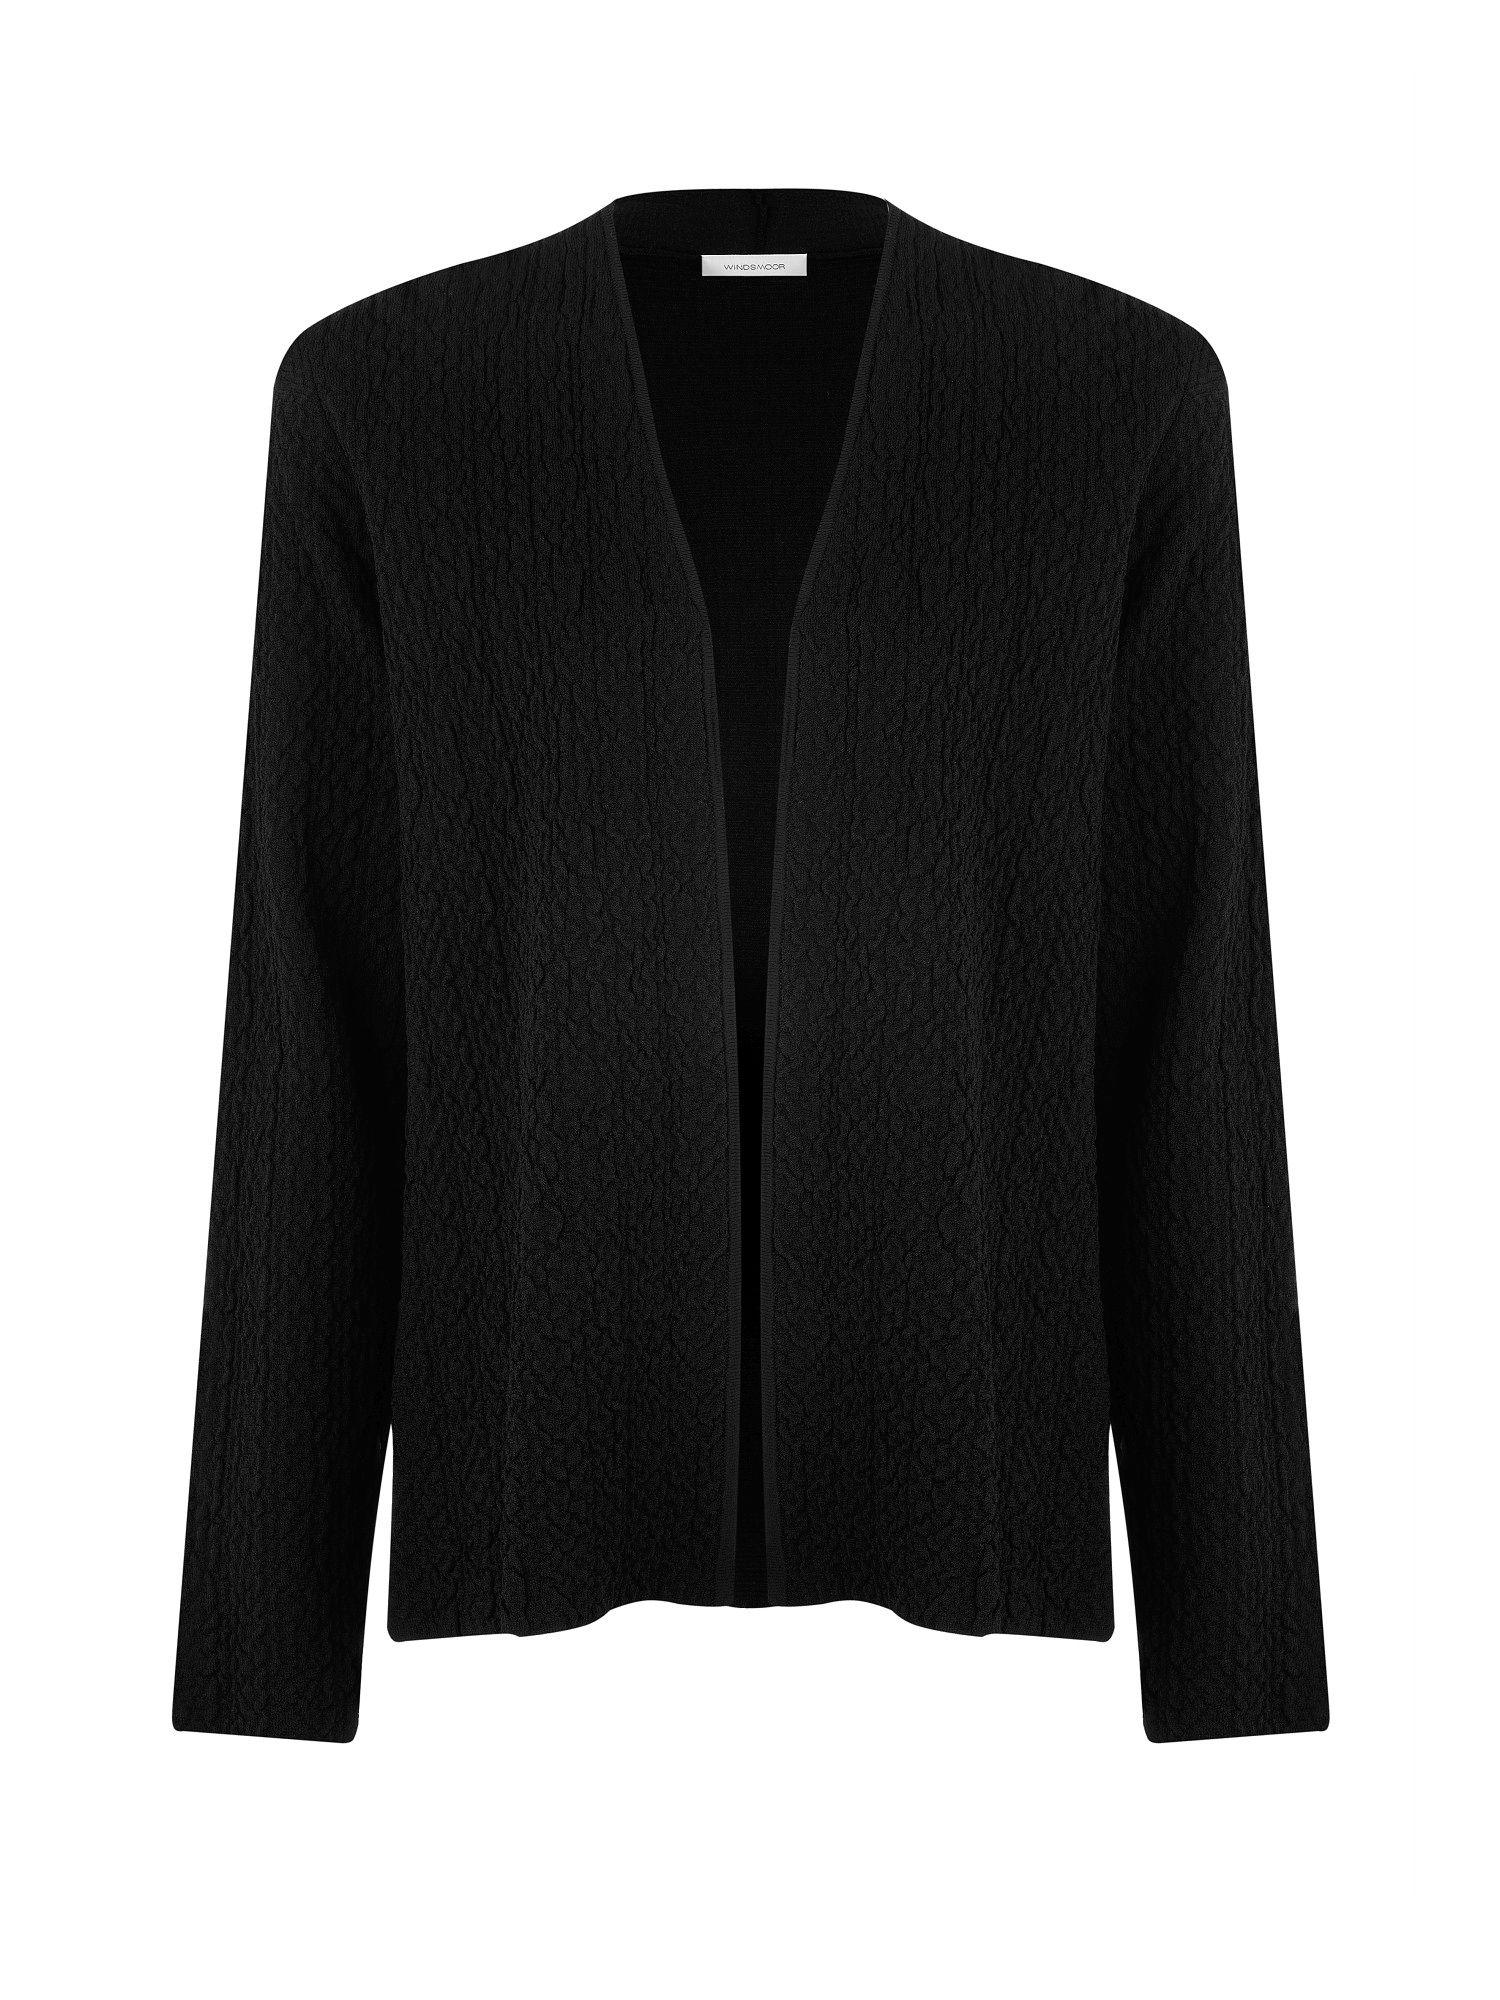 Black textured cardigan